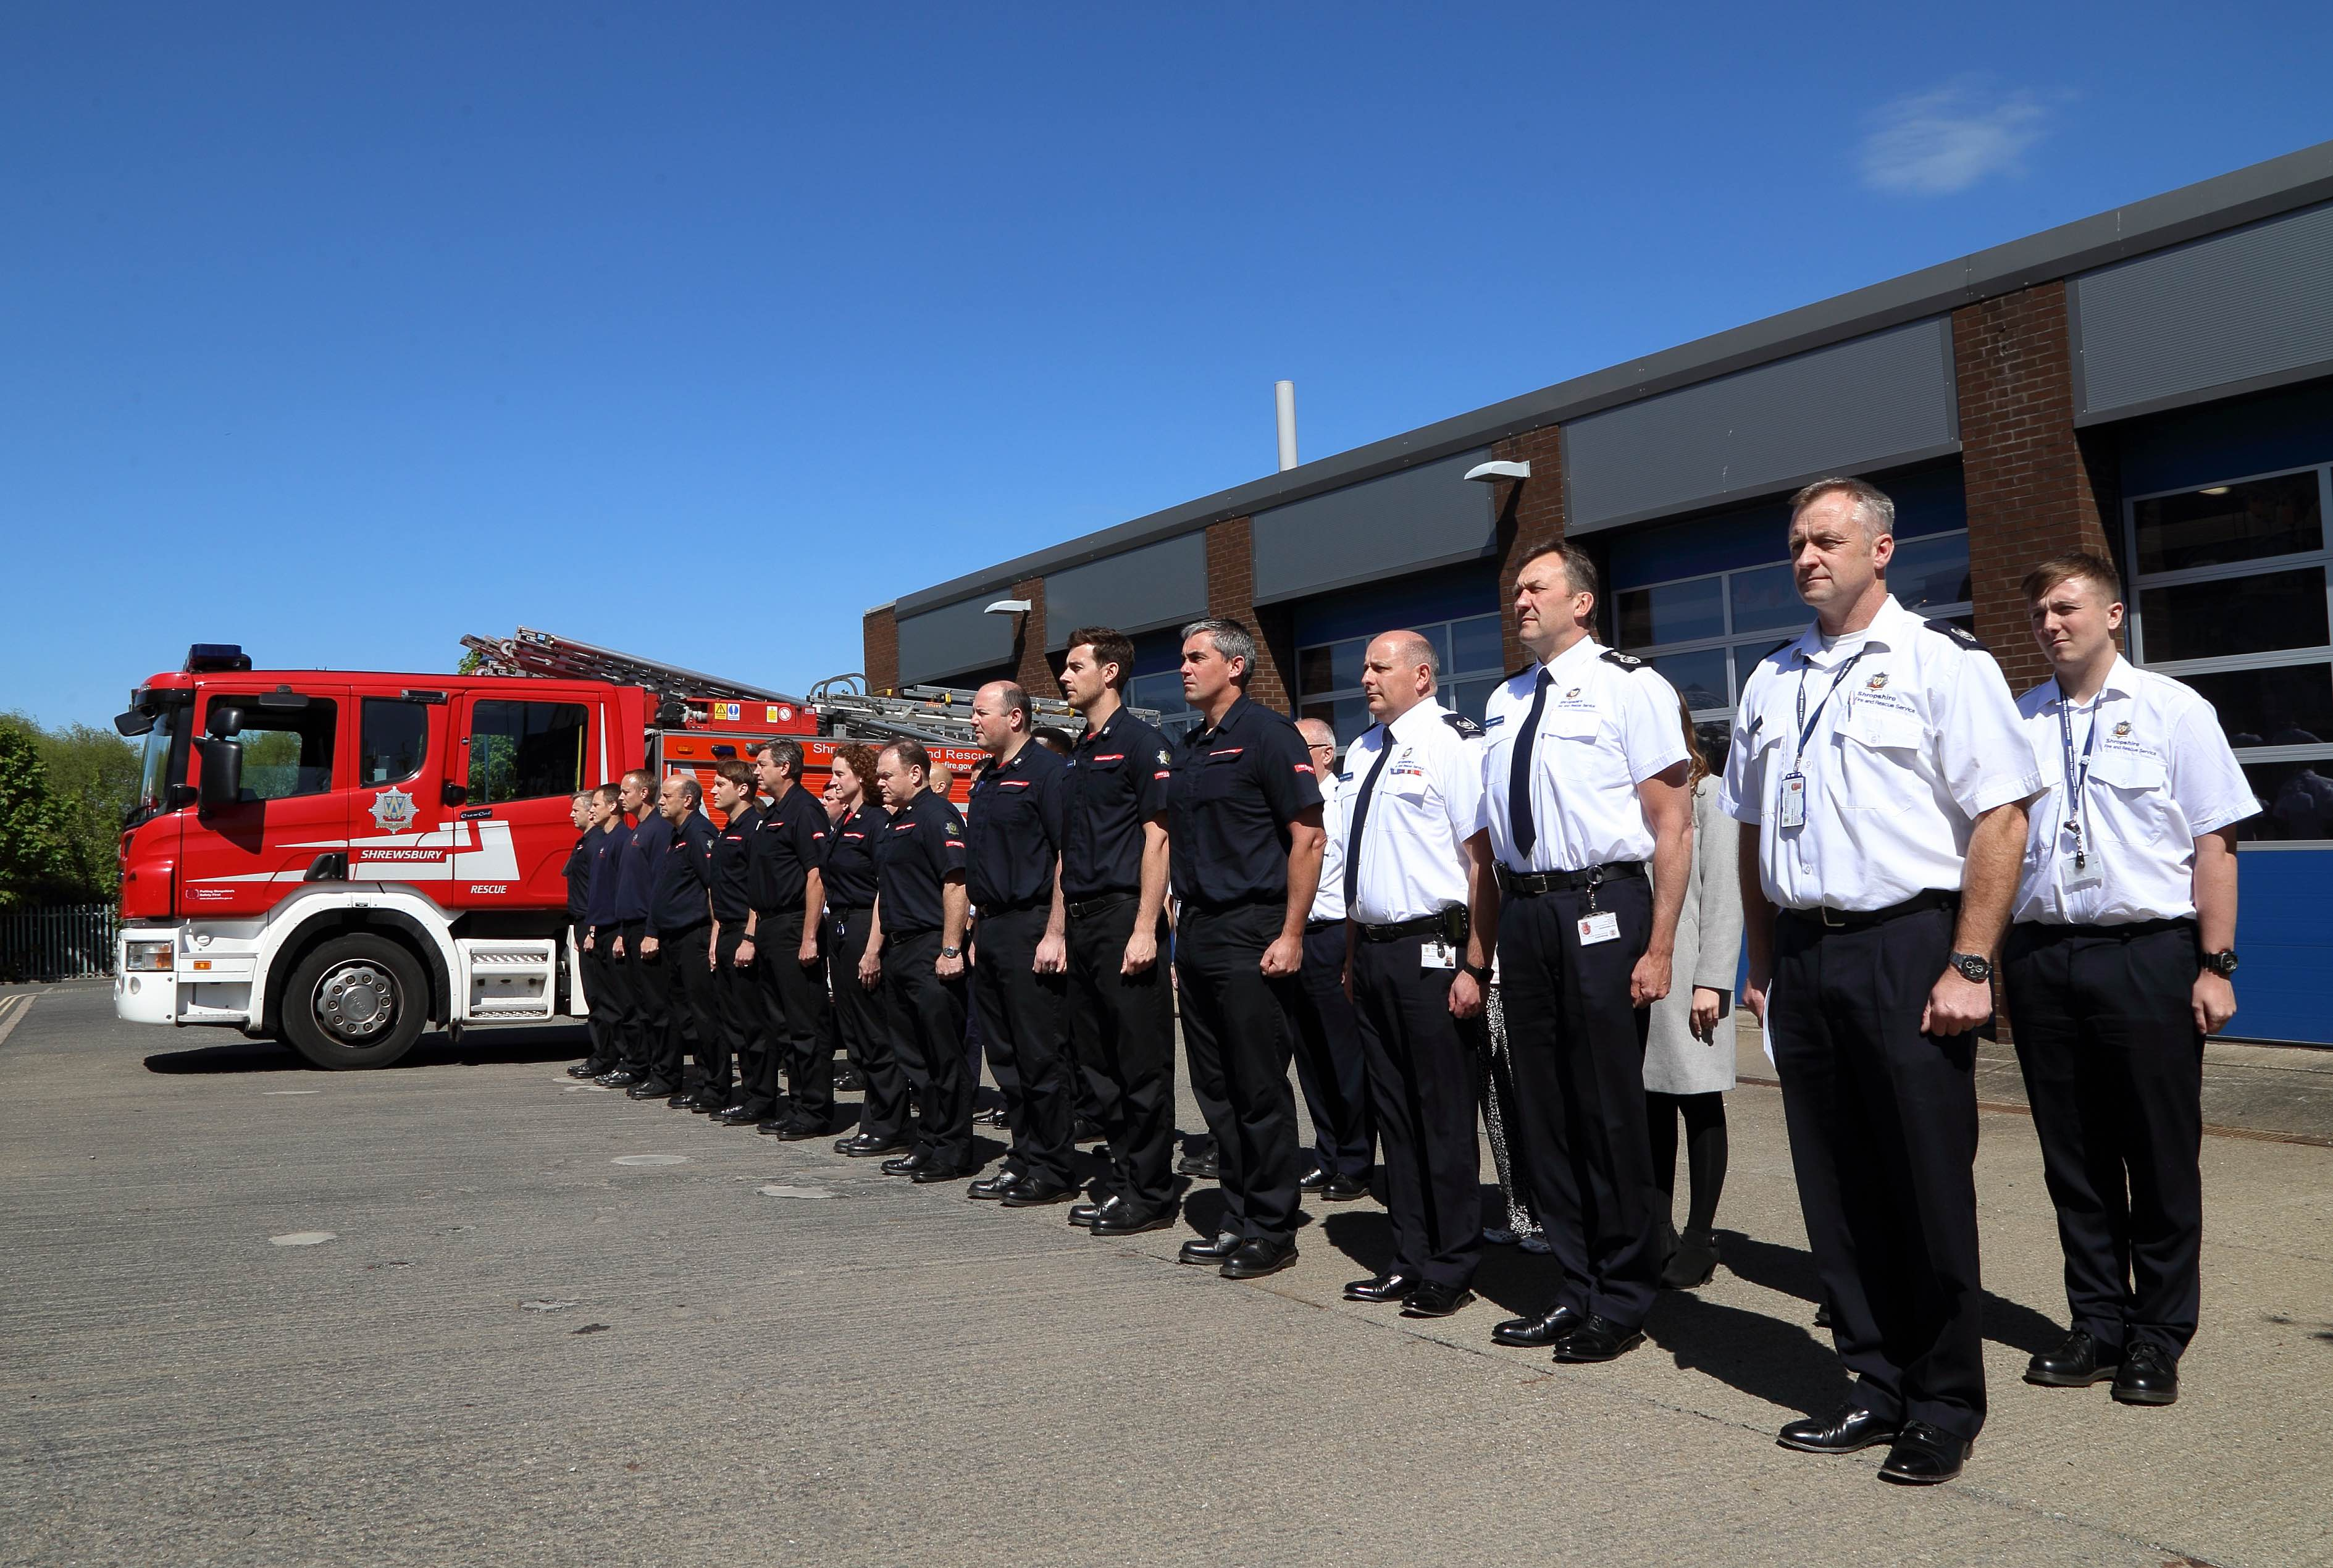 Officers and firefighters' at the Firefighters' Memorial Day tribute at Shrewsbury fire HQ.